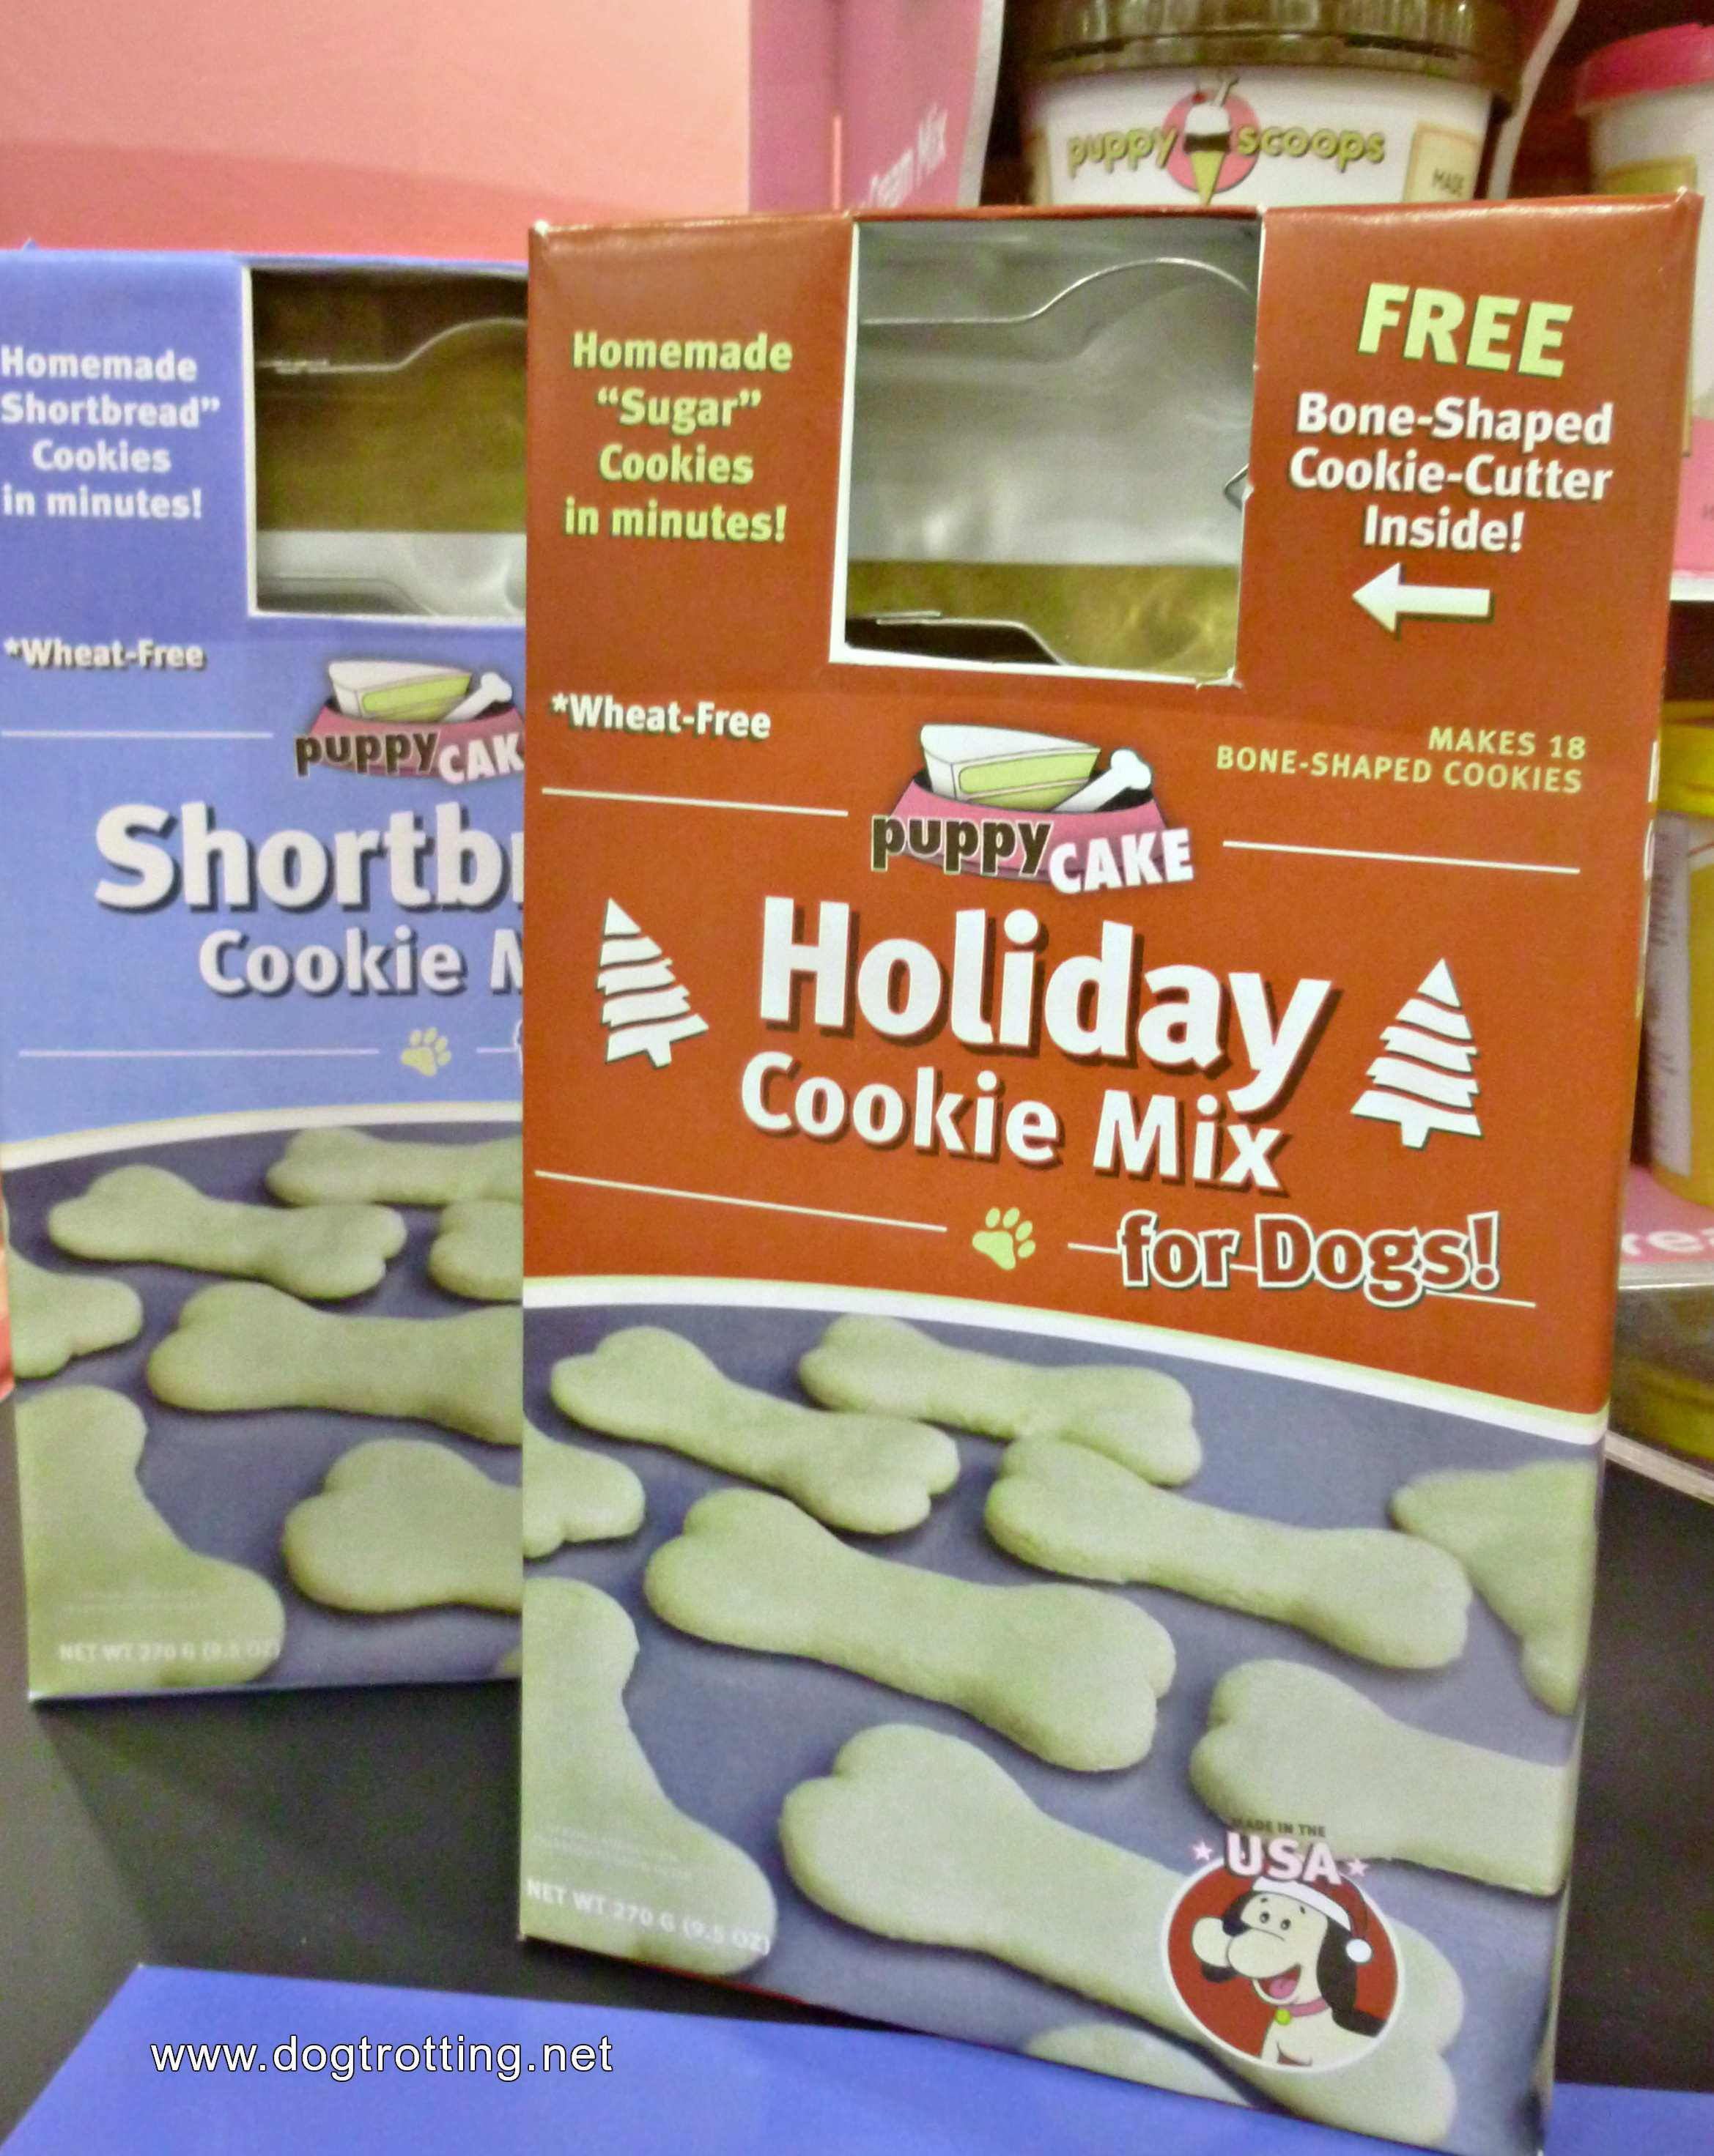 image of puppy cake holiday cookie mix for dogs